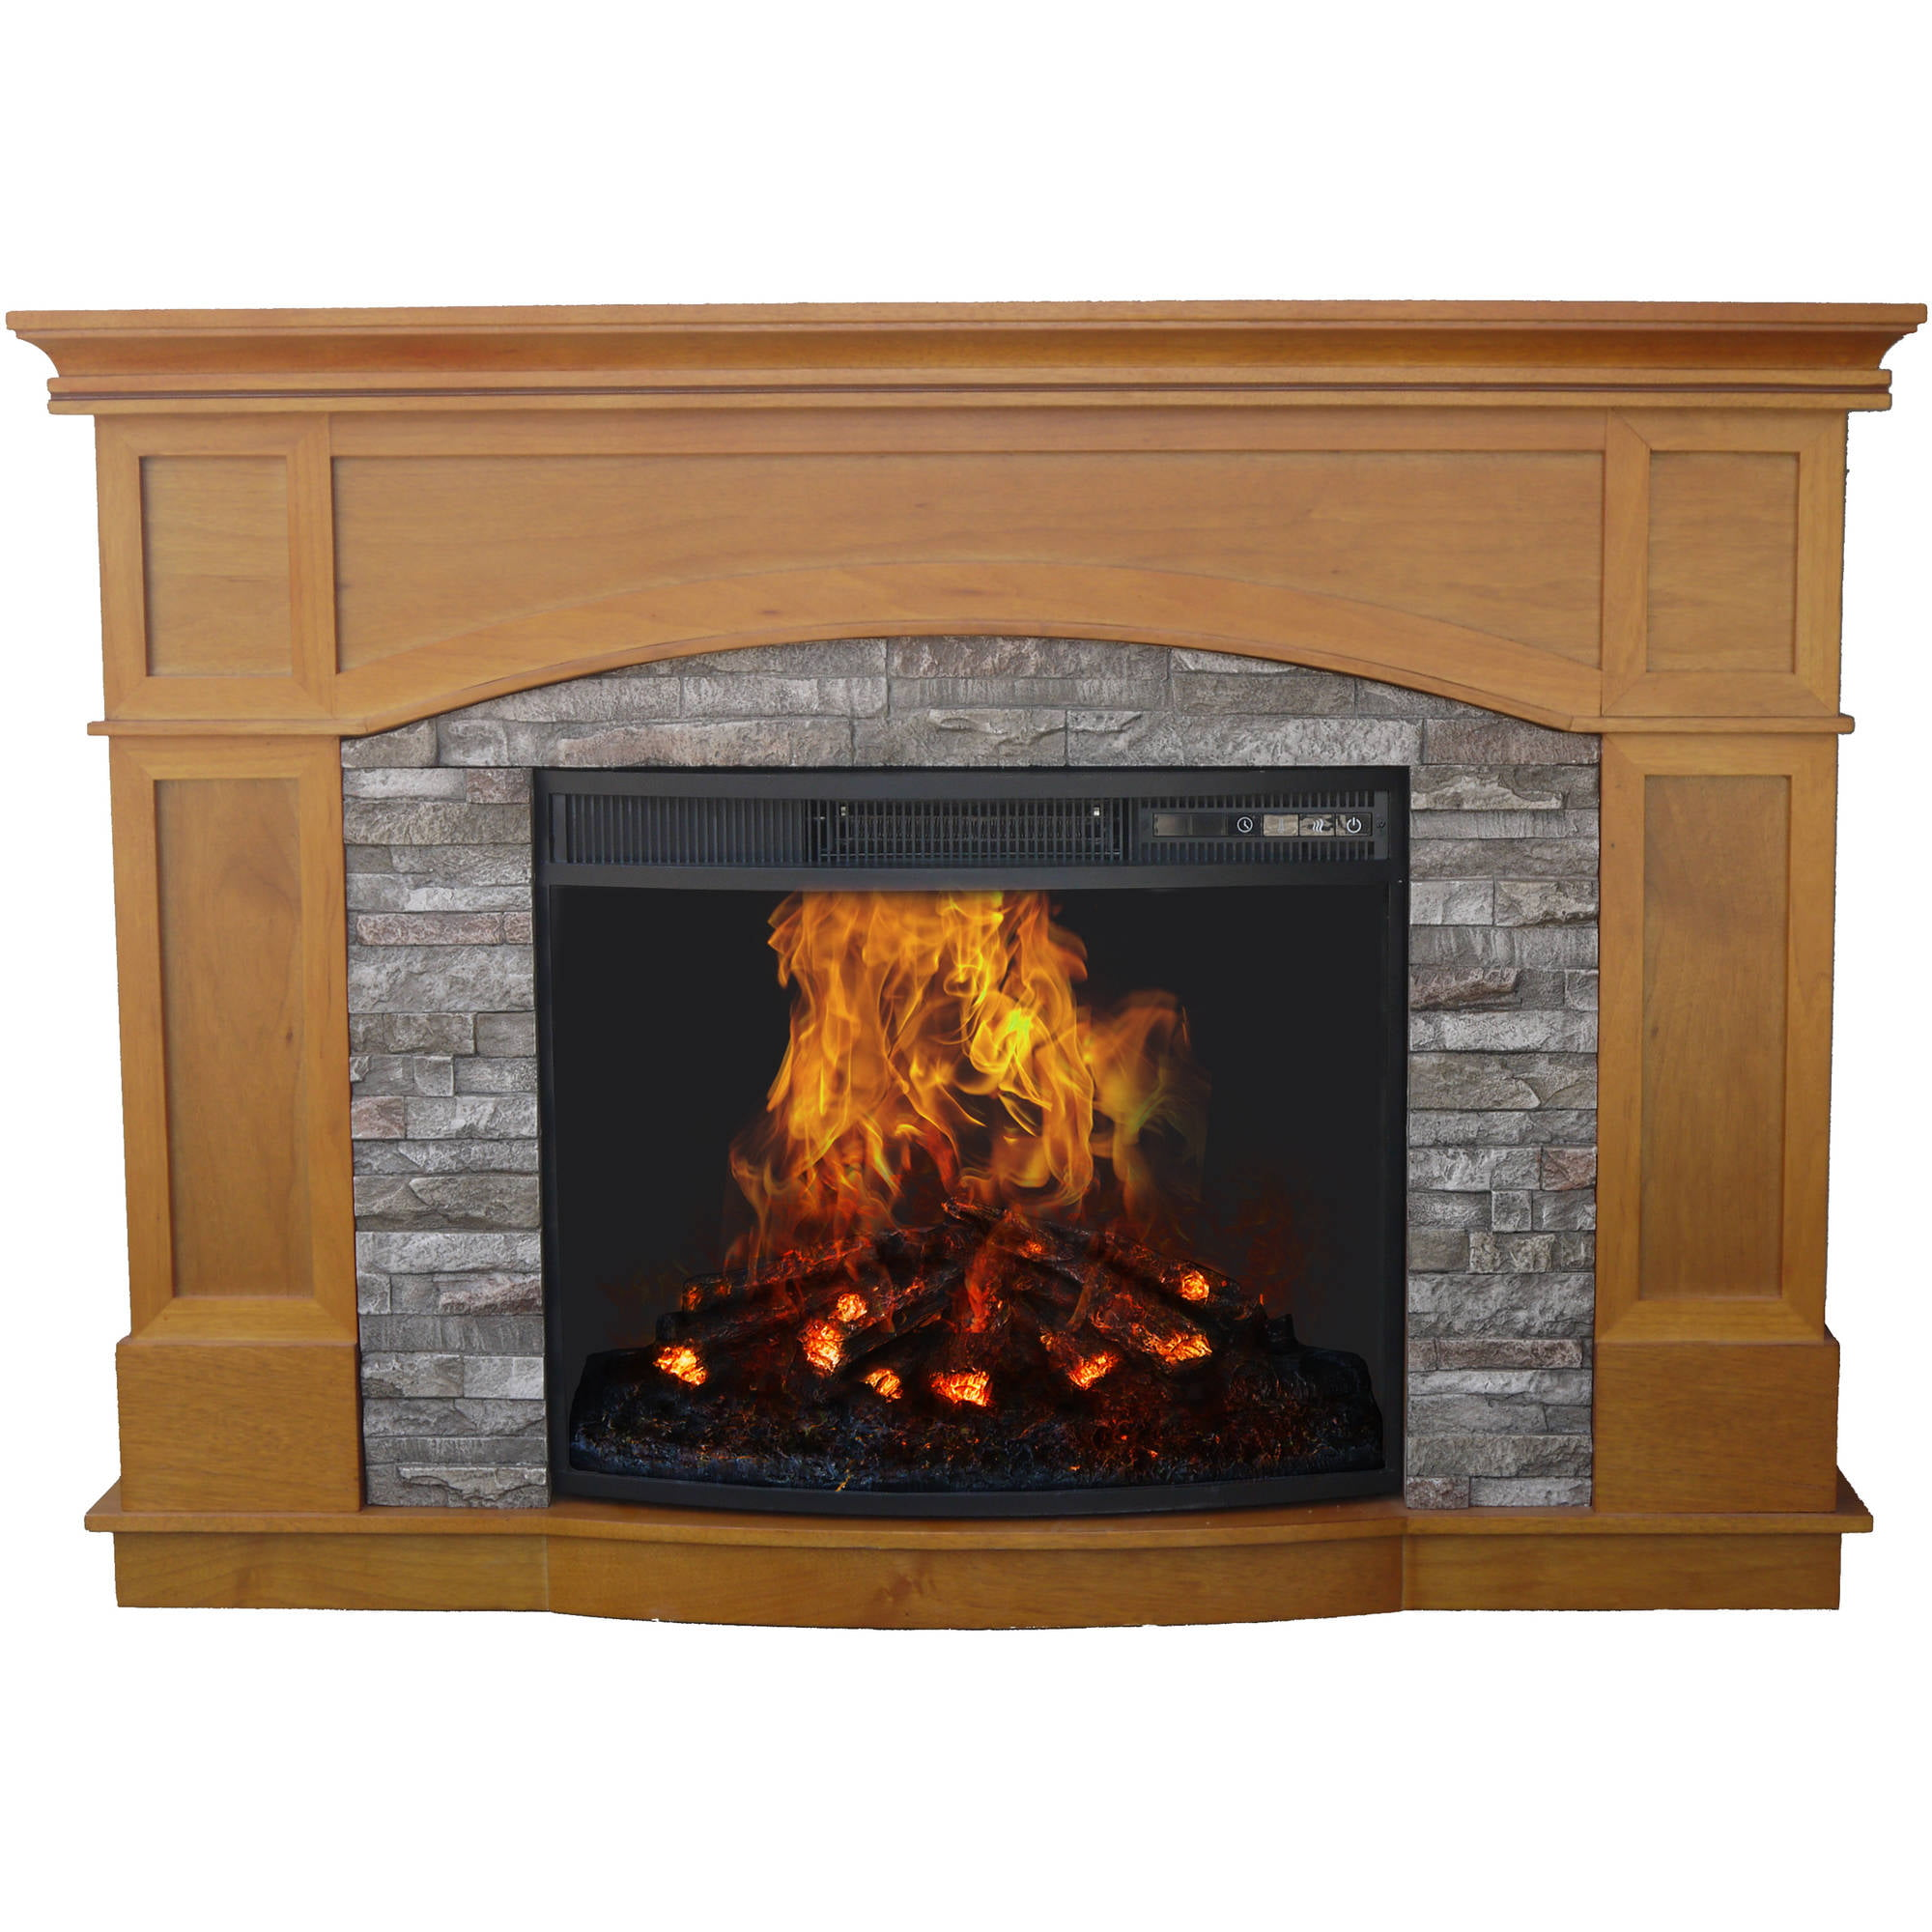 on lowes sale fireplaces fireplace home depot electric